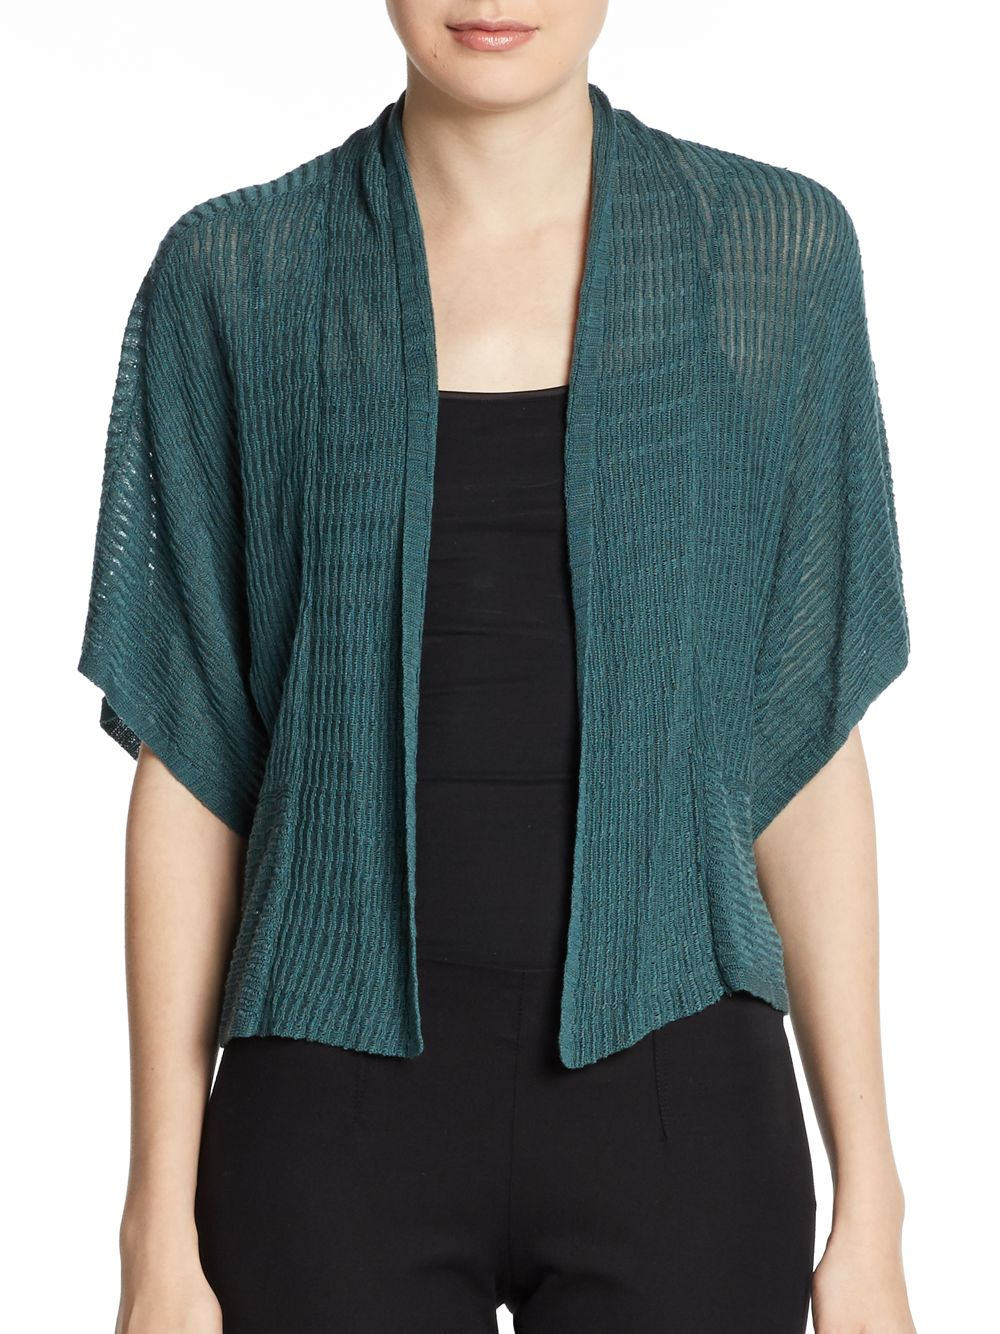 Eileen fisher Cropped Ripple Knit Cardigan in Green Lyst